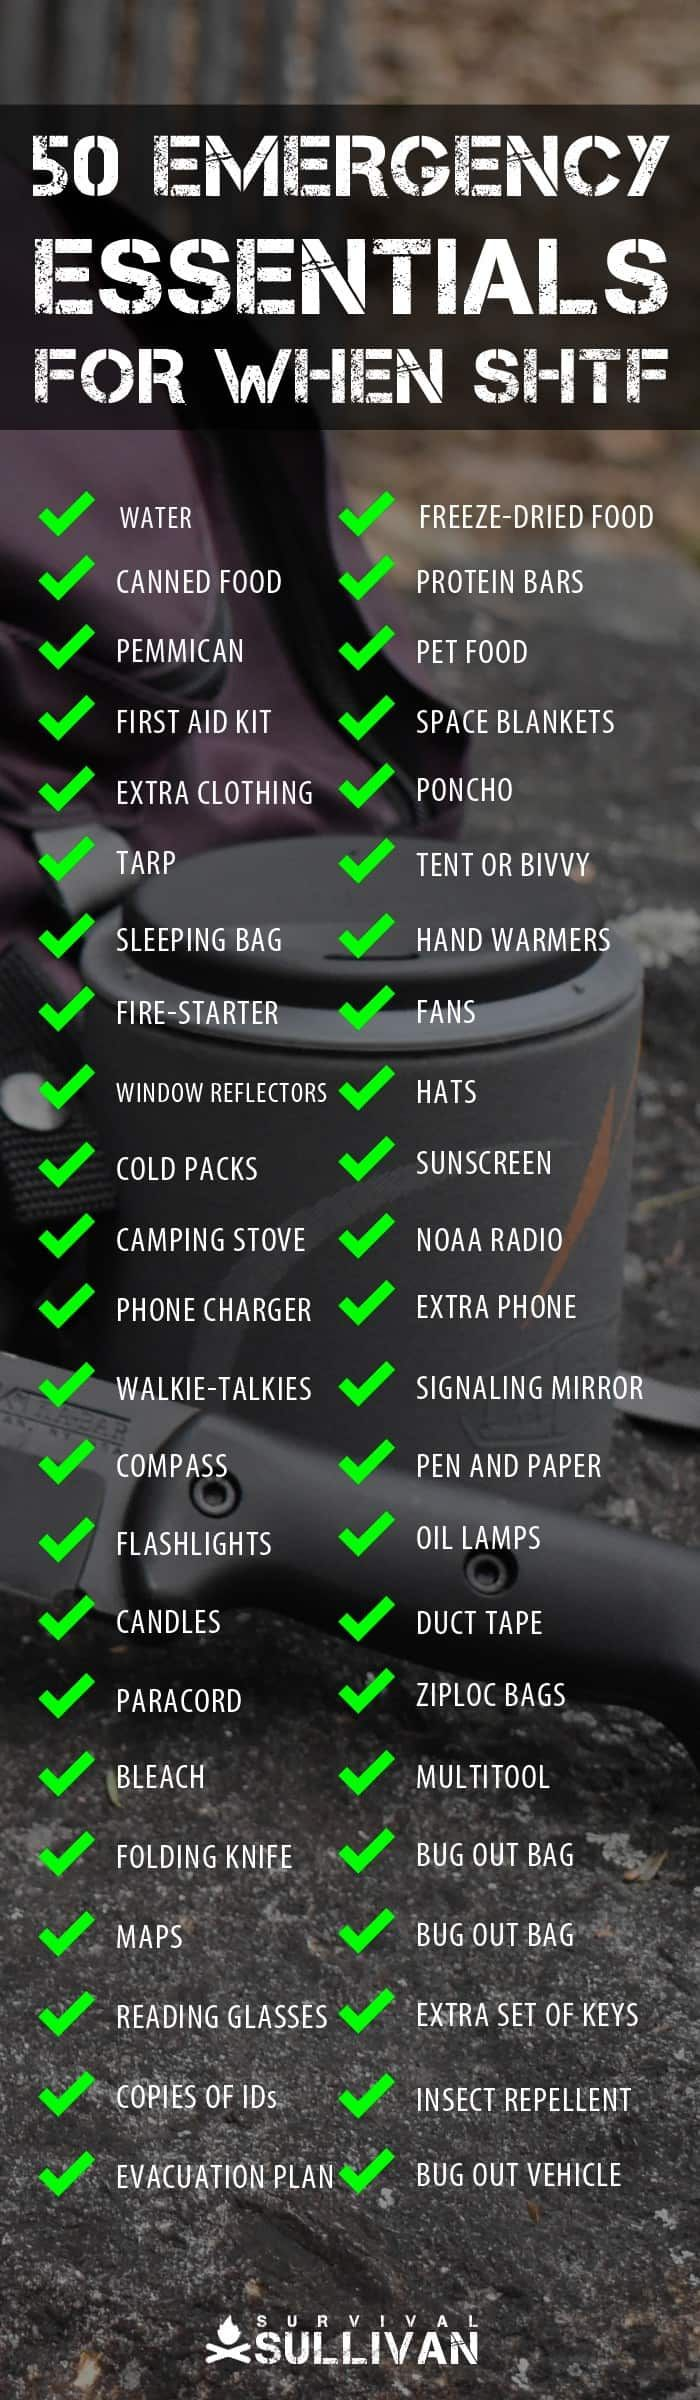 50 Emergency Essentials for when SHTF [PDF Checklist] | Survival Sullivan